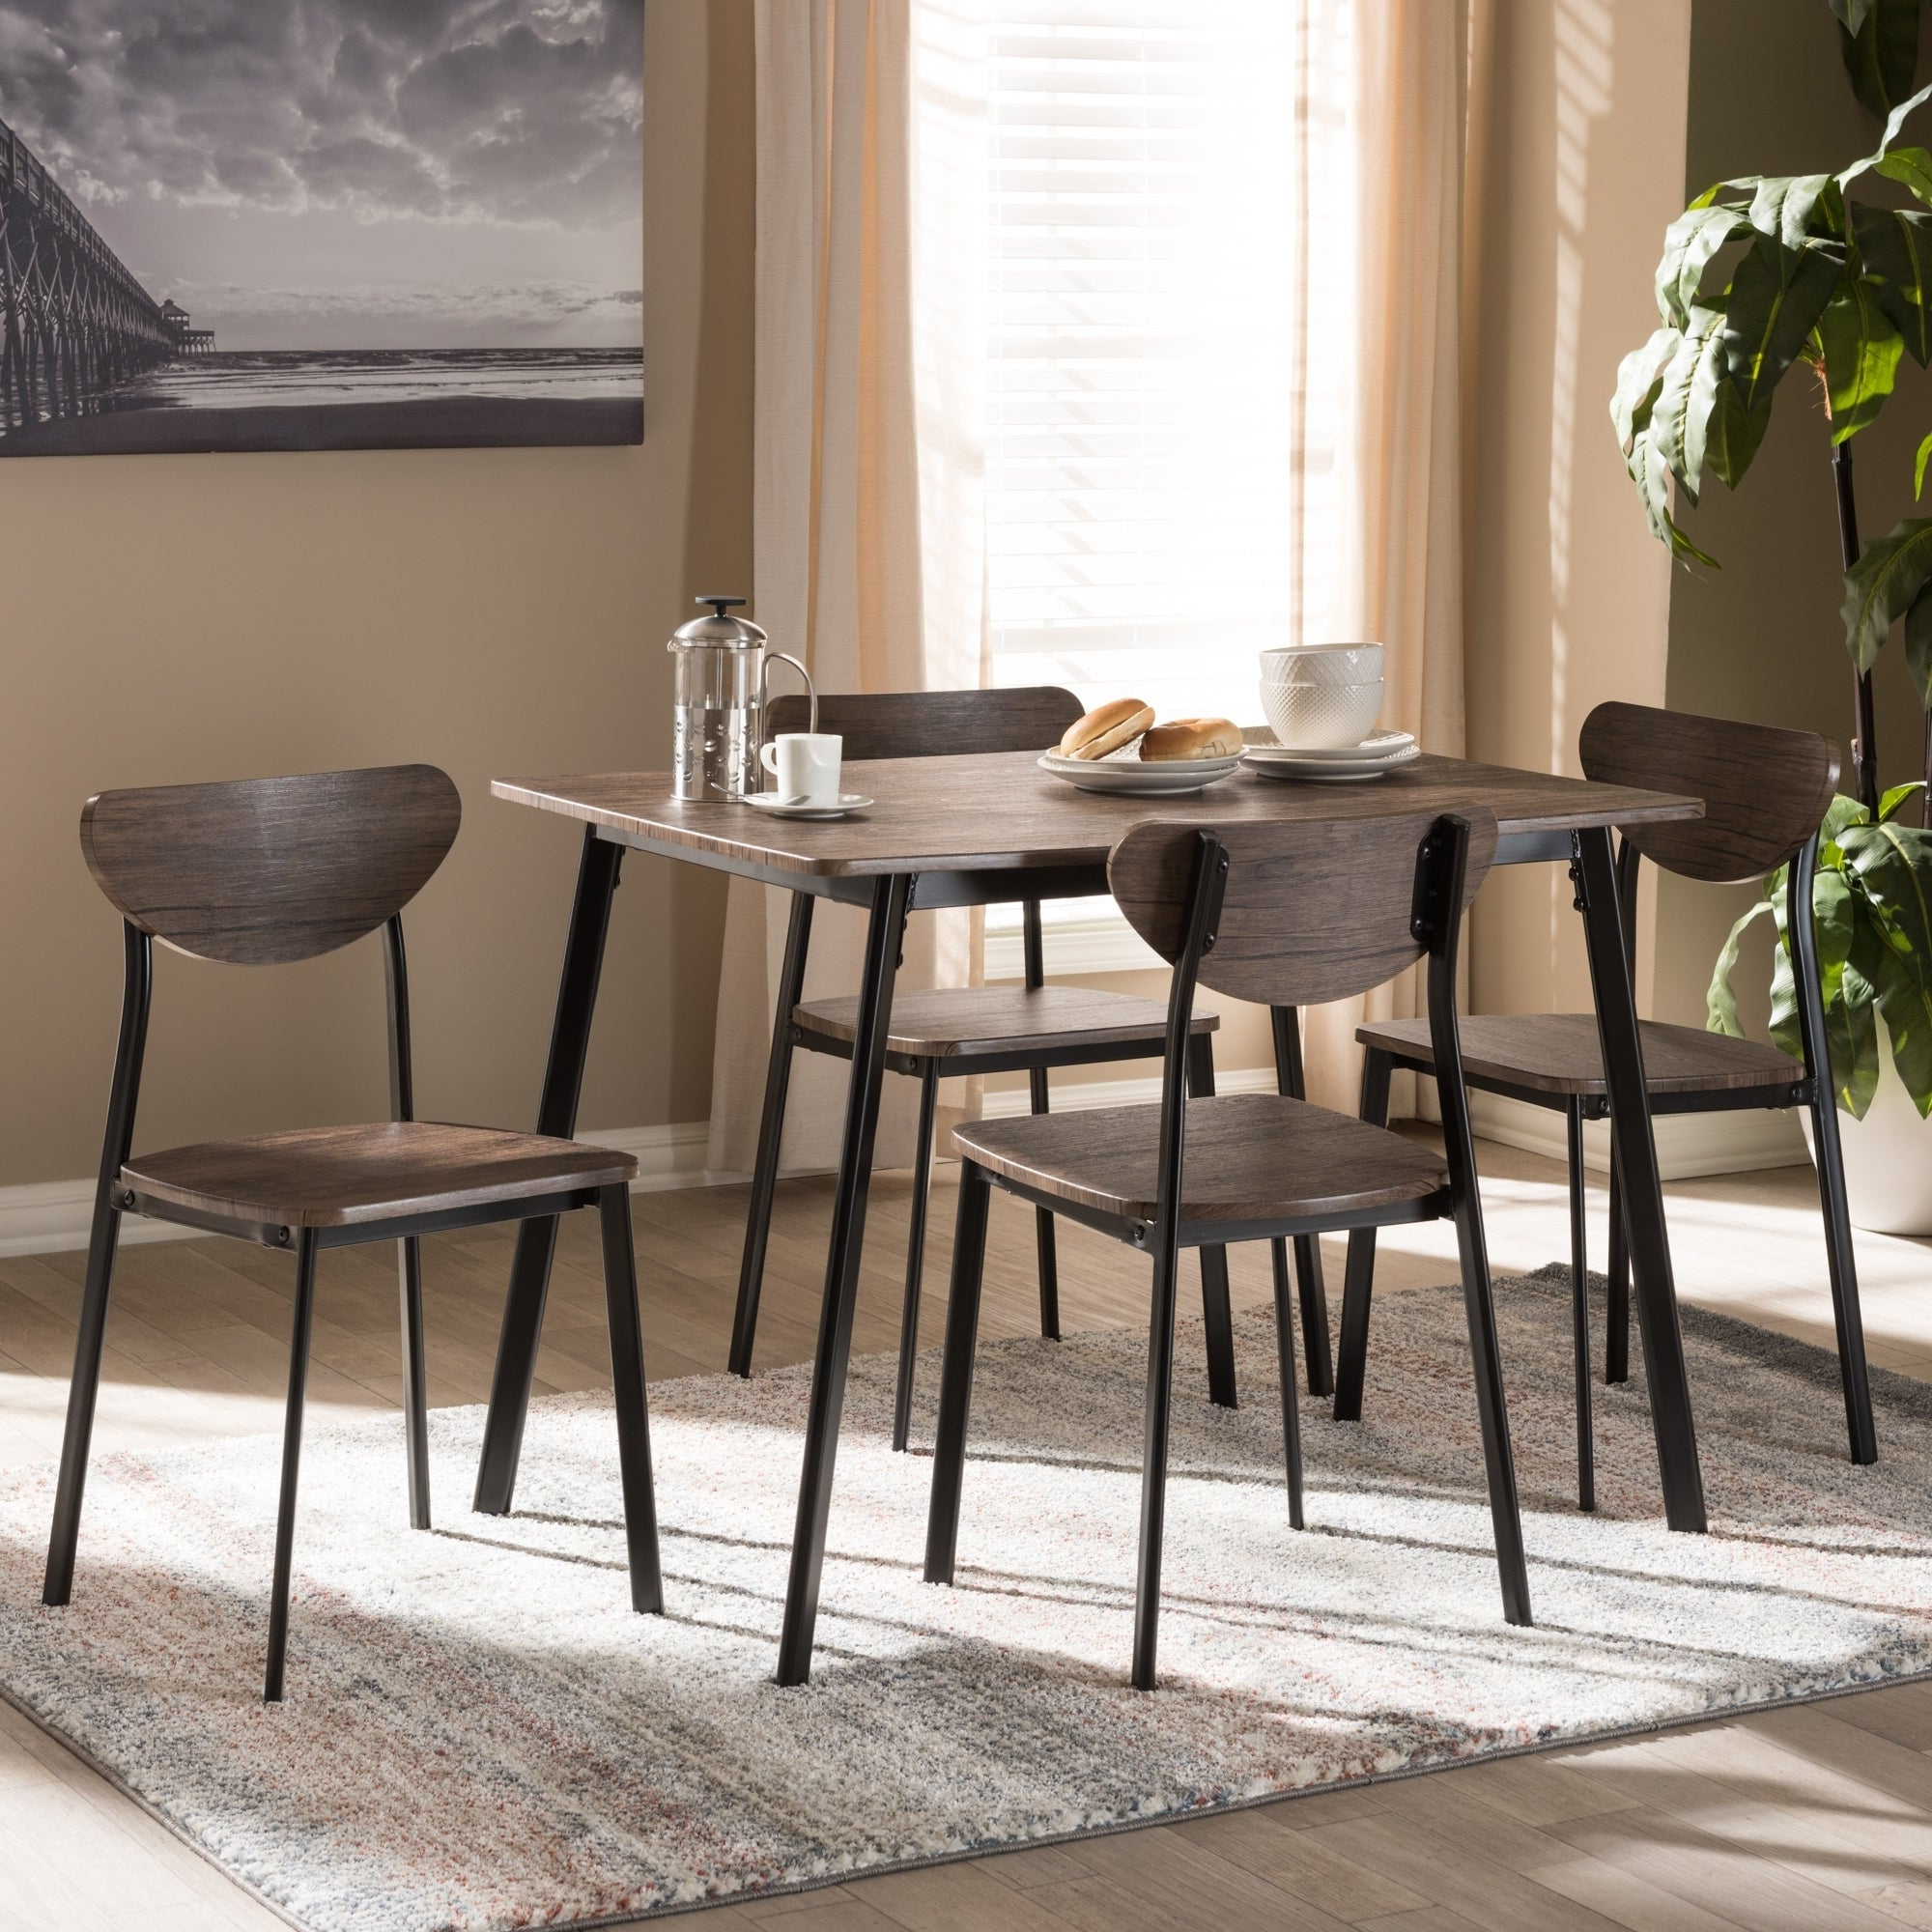 West Hill Family Table 3 Piece Dining Sets With Newest Buy 5 Piece Sets Kitchen & Dining Room Sets Online At Overstock (View 21 of 25)